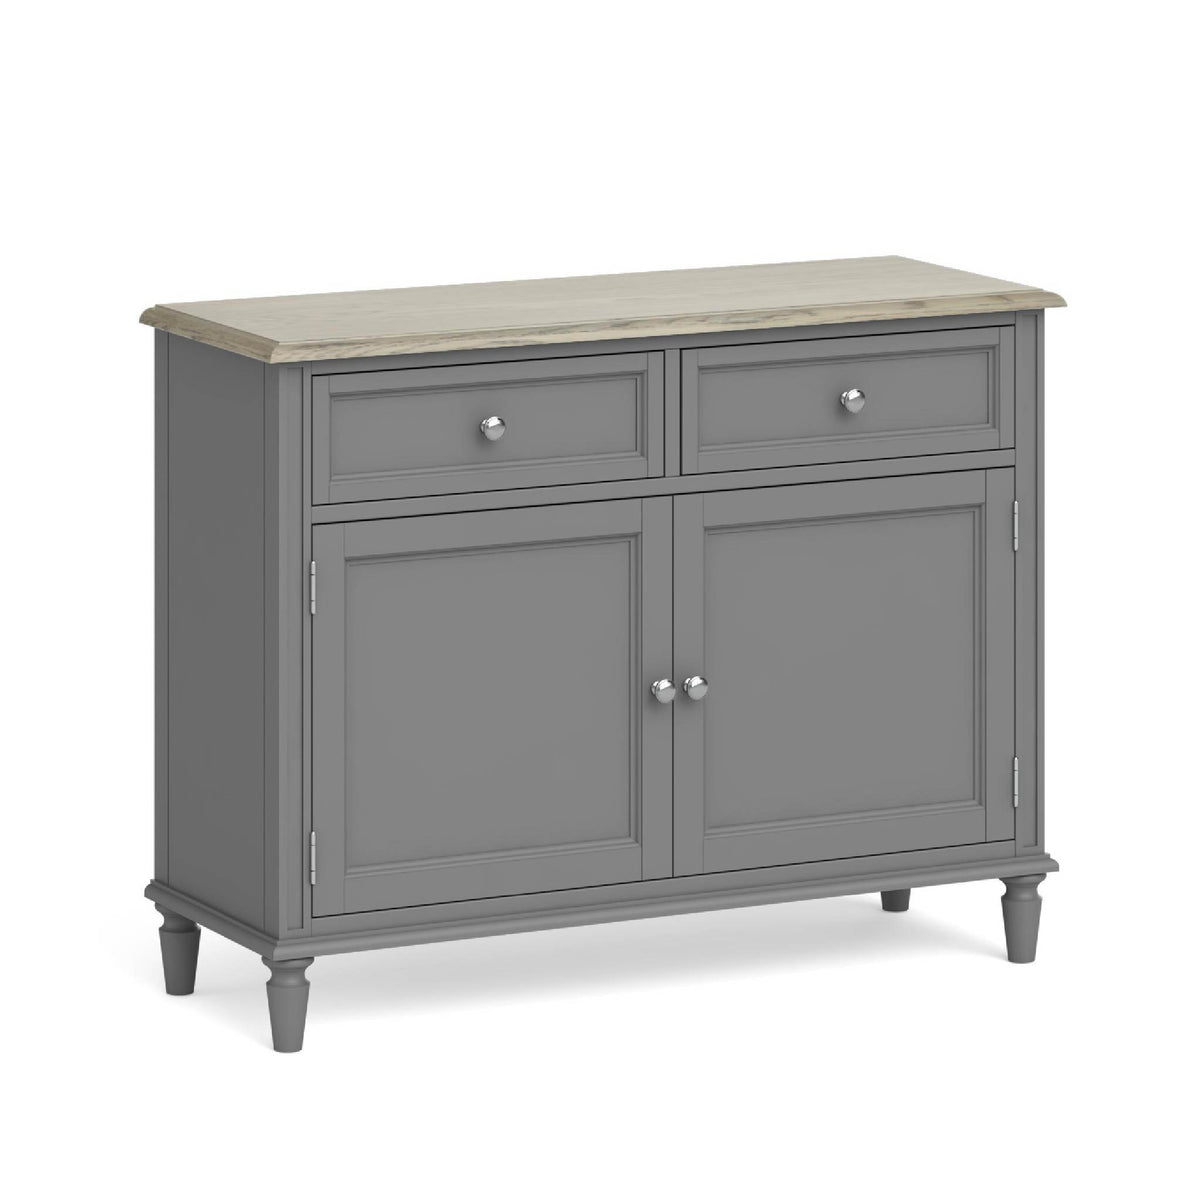 Mulsanne Grey Small Sideboard by Roseland Furniture